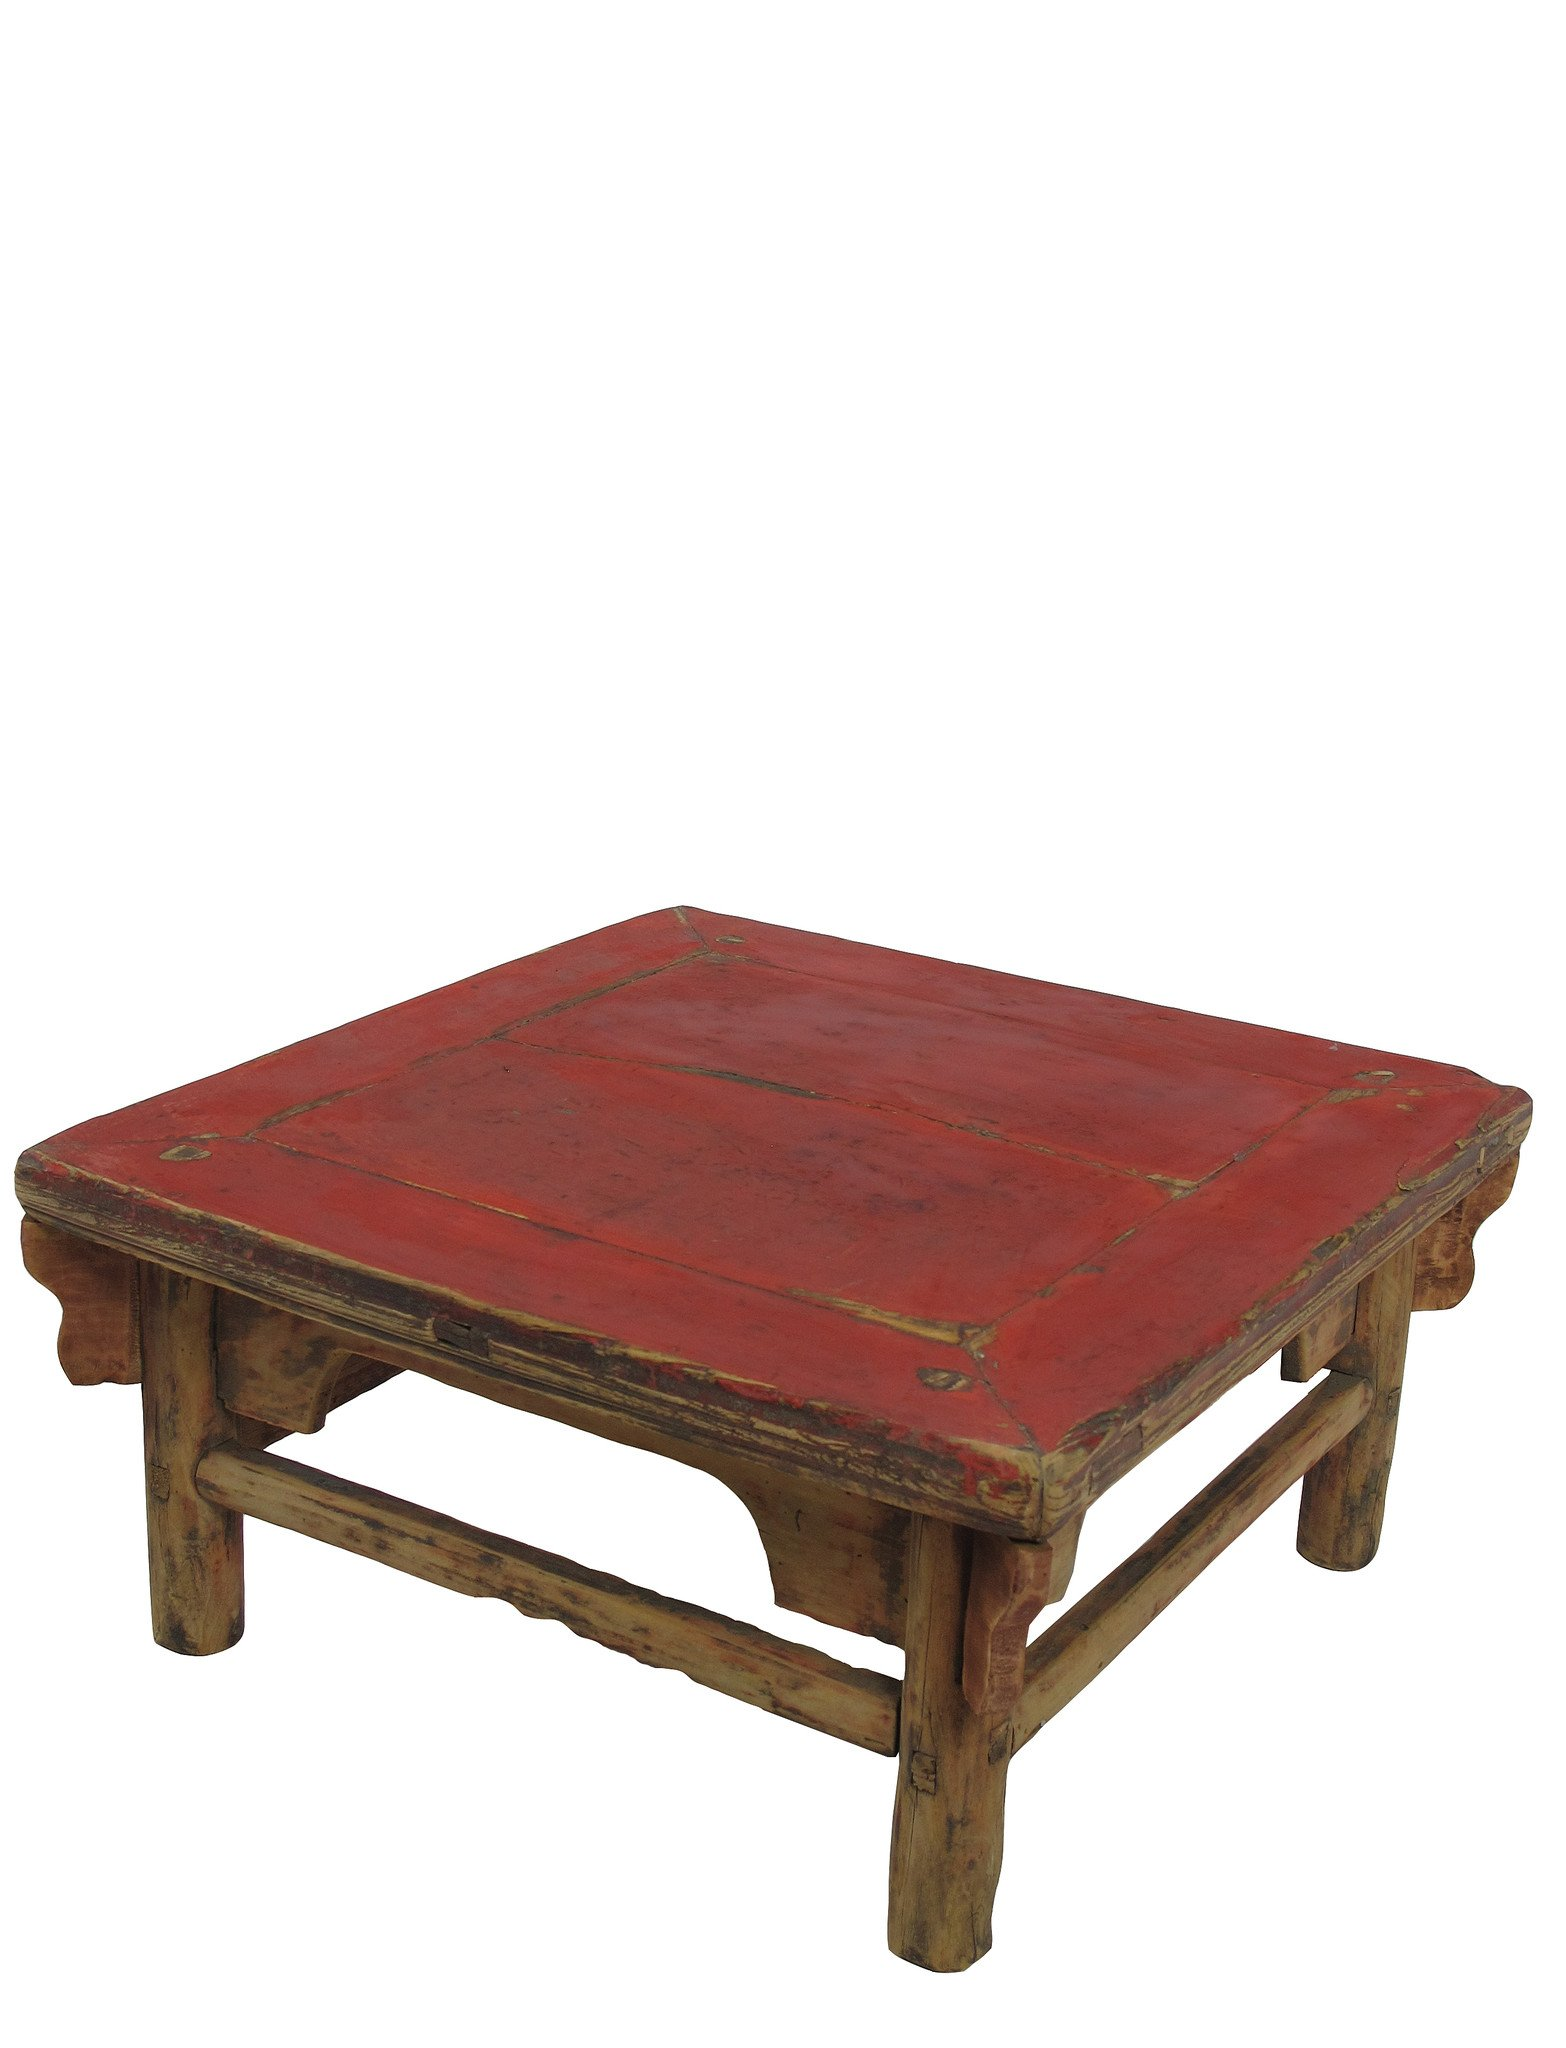 take look this gold patina low square accent table today coffee red top dyag east large ikea for glass with storage wooden profile grey gloss nest tables overbed target side